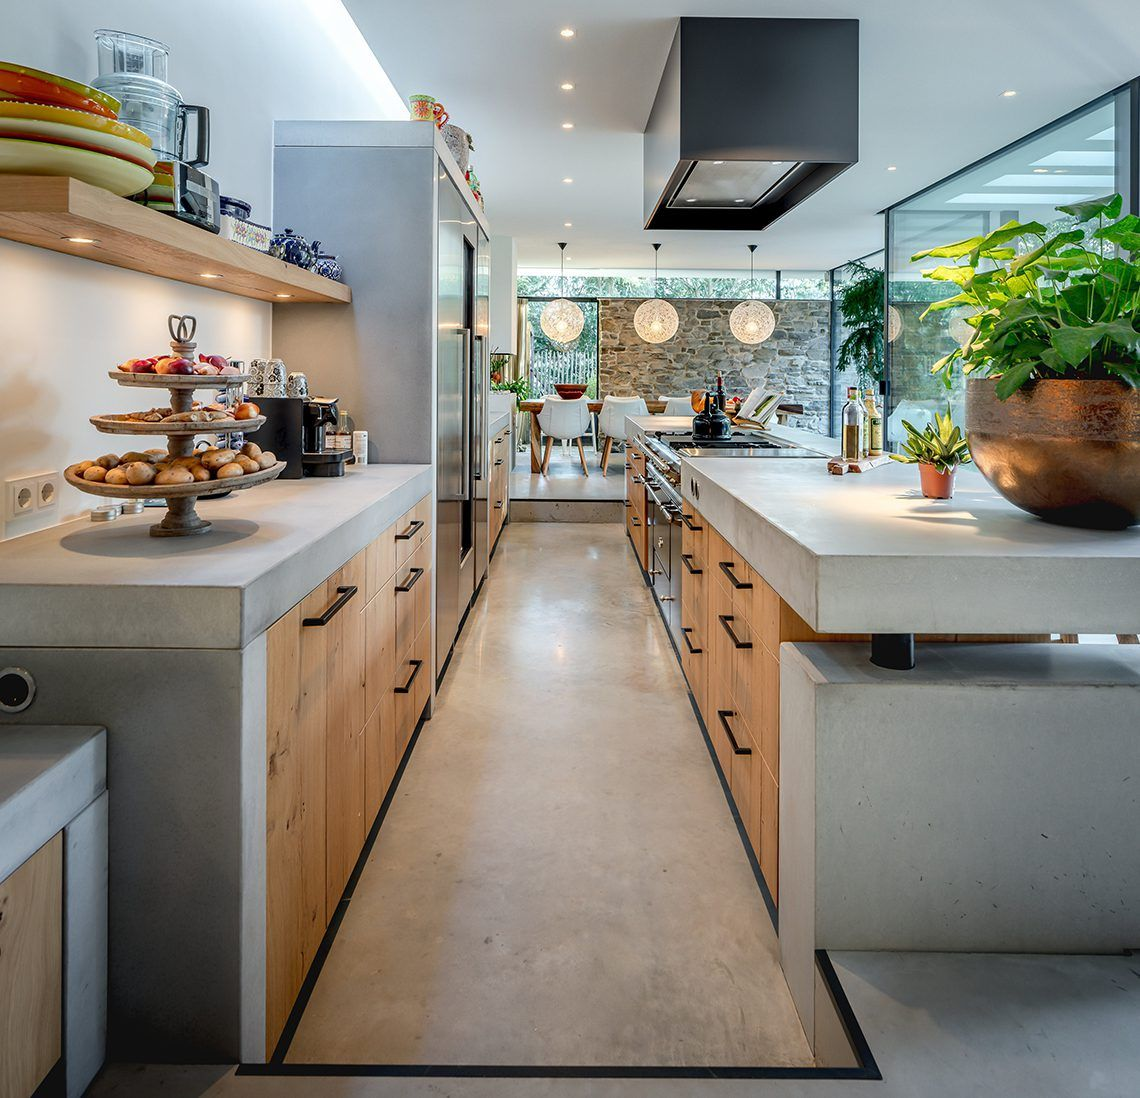 Check out this kitchen with the PMQ